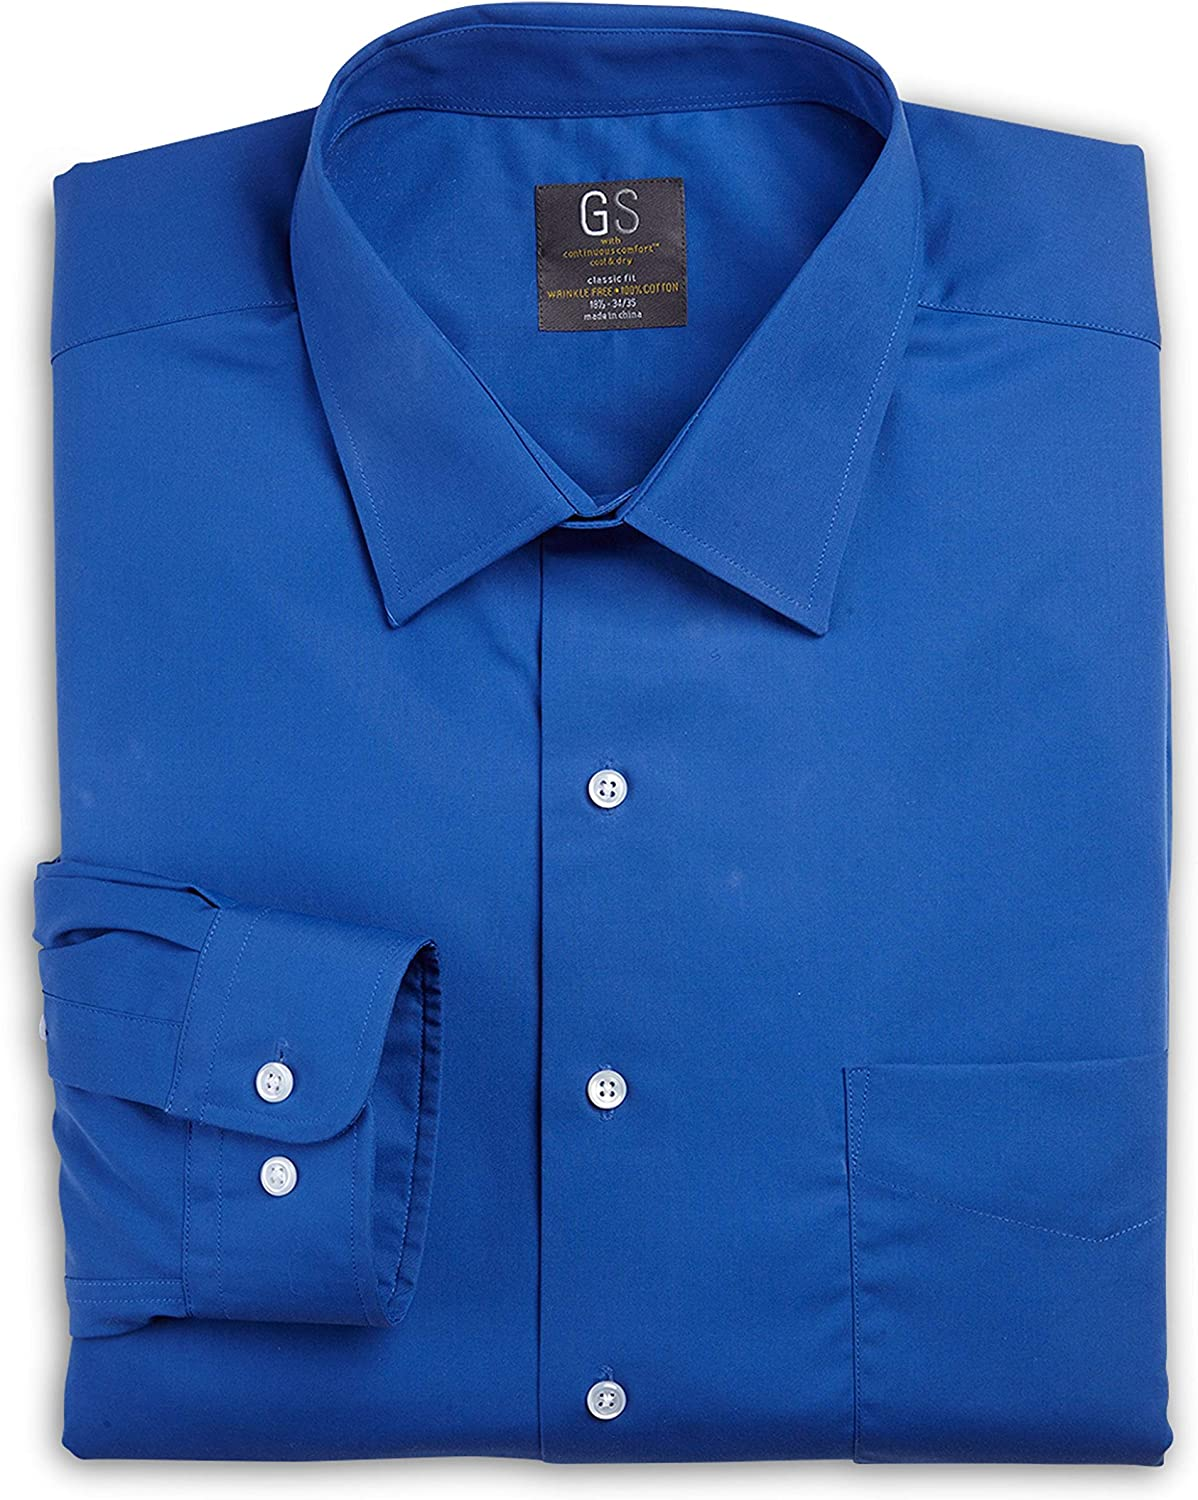 Gold Series by DXL Big and Tall Broadcloth Dress Shirts